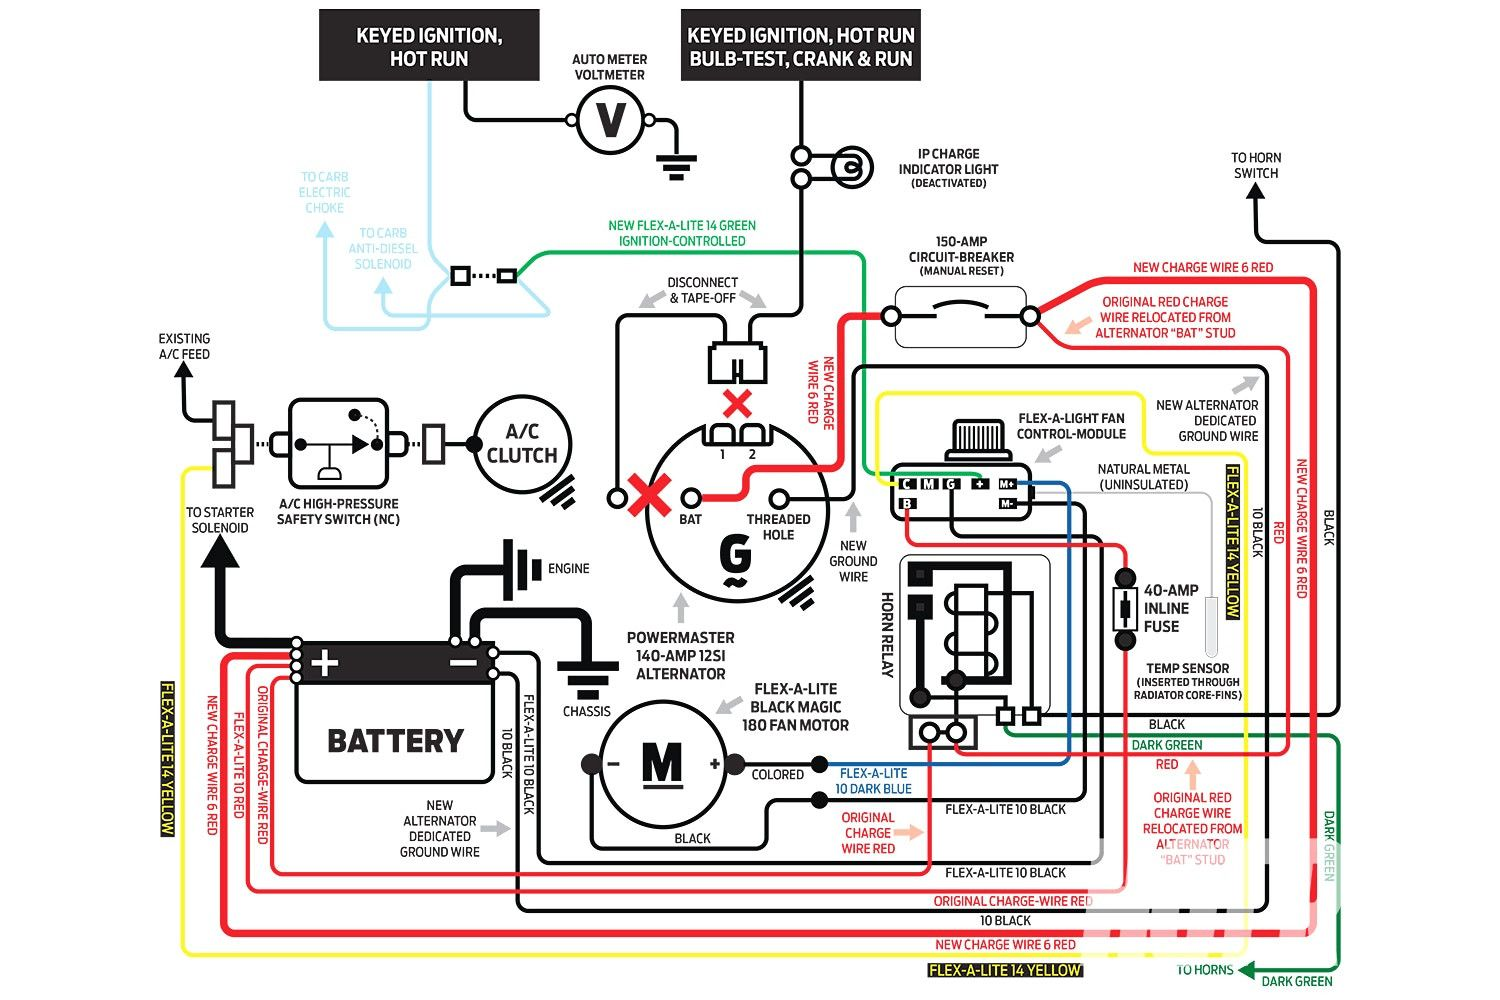 Wiring Diagram Hot Rod For Dummies Prepossessing Afif With How To Wire A | Hot  rods, Harley davidson oil, DiagramPinterest